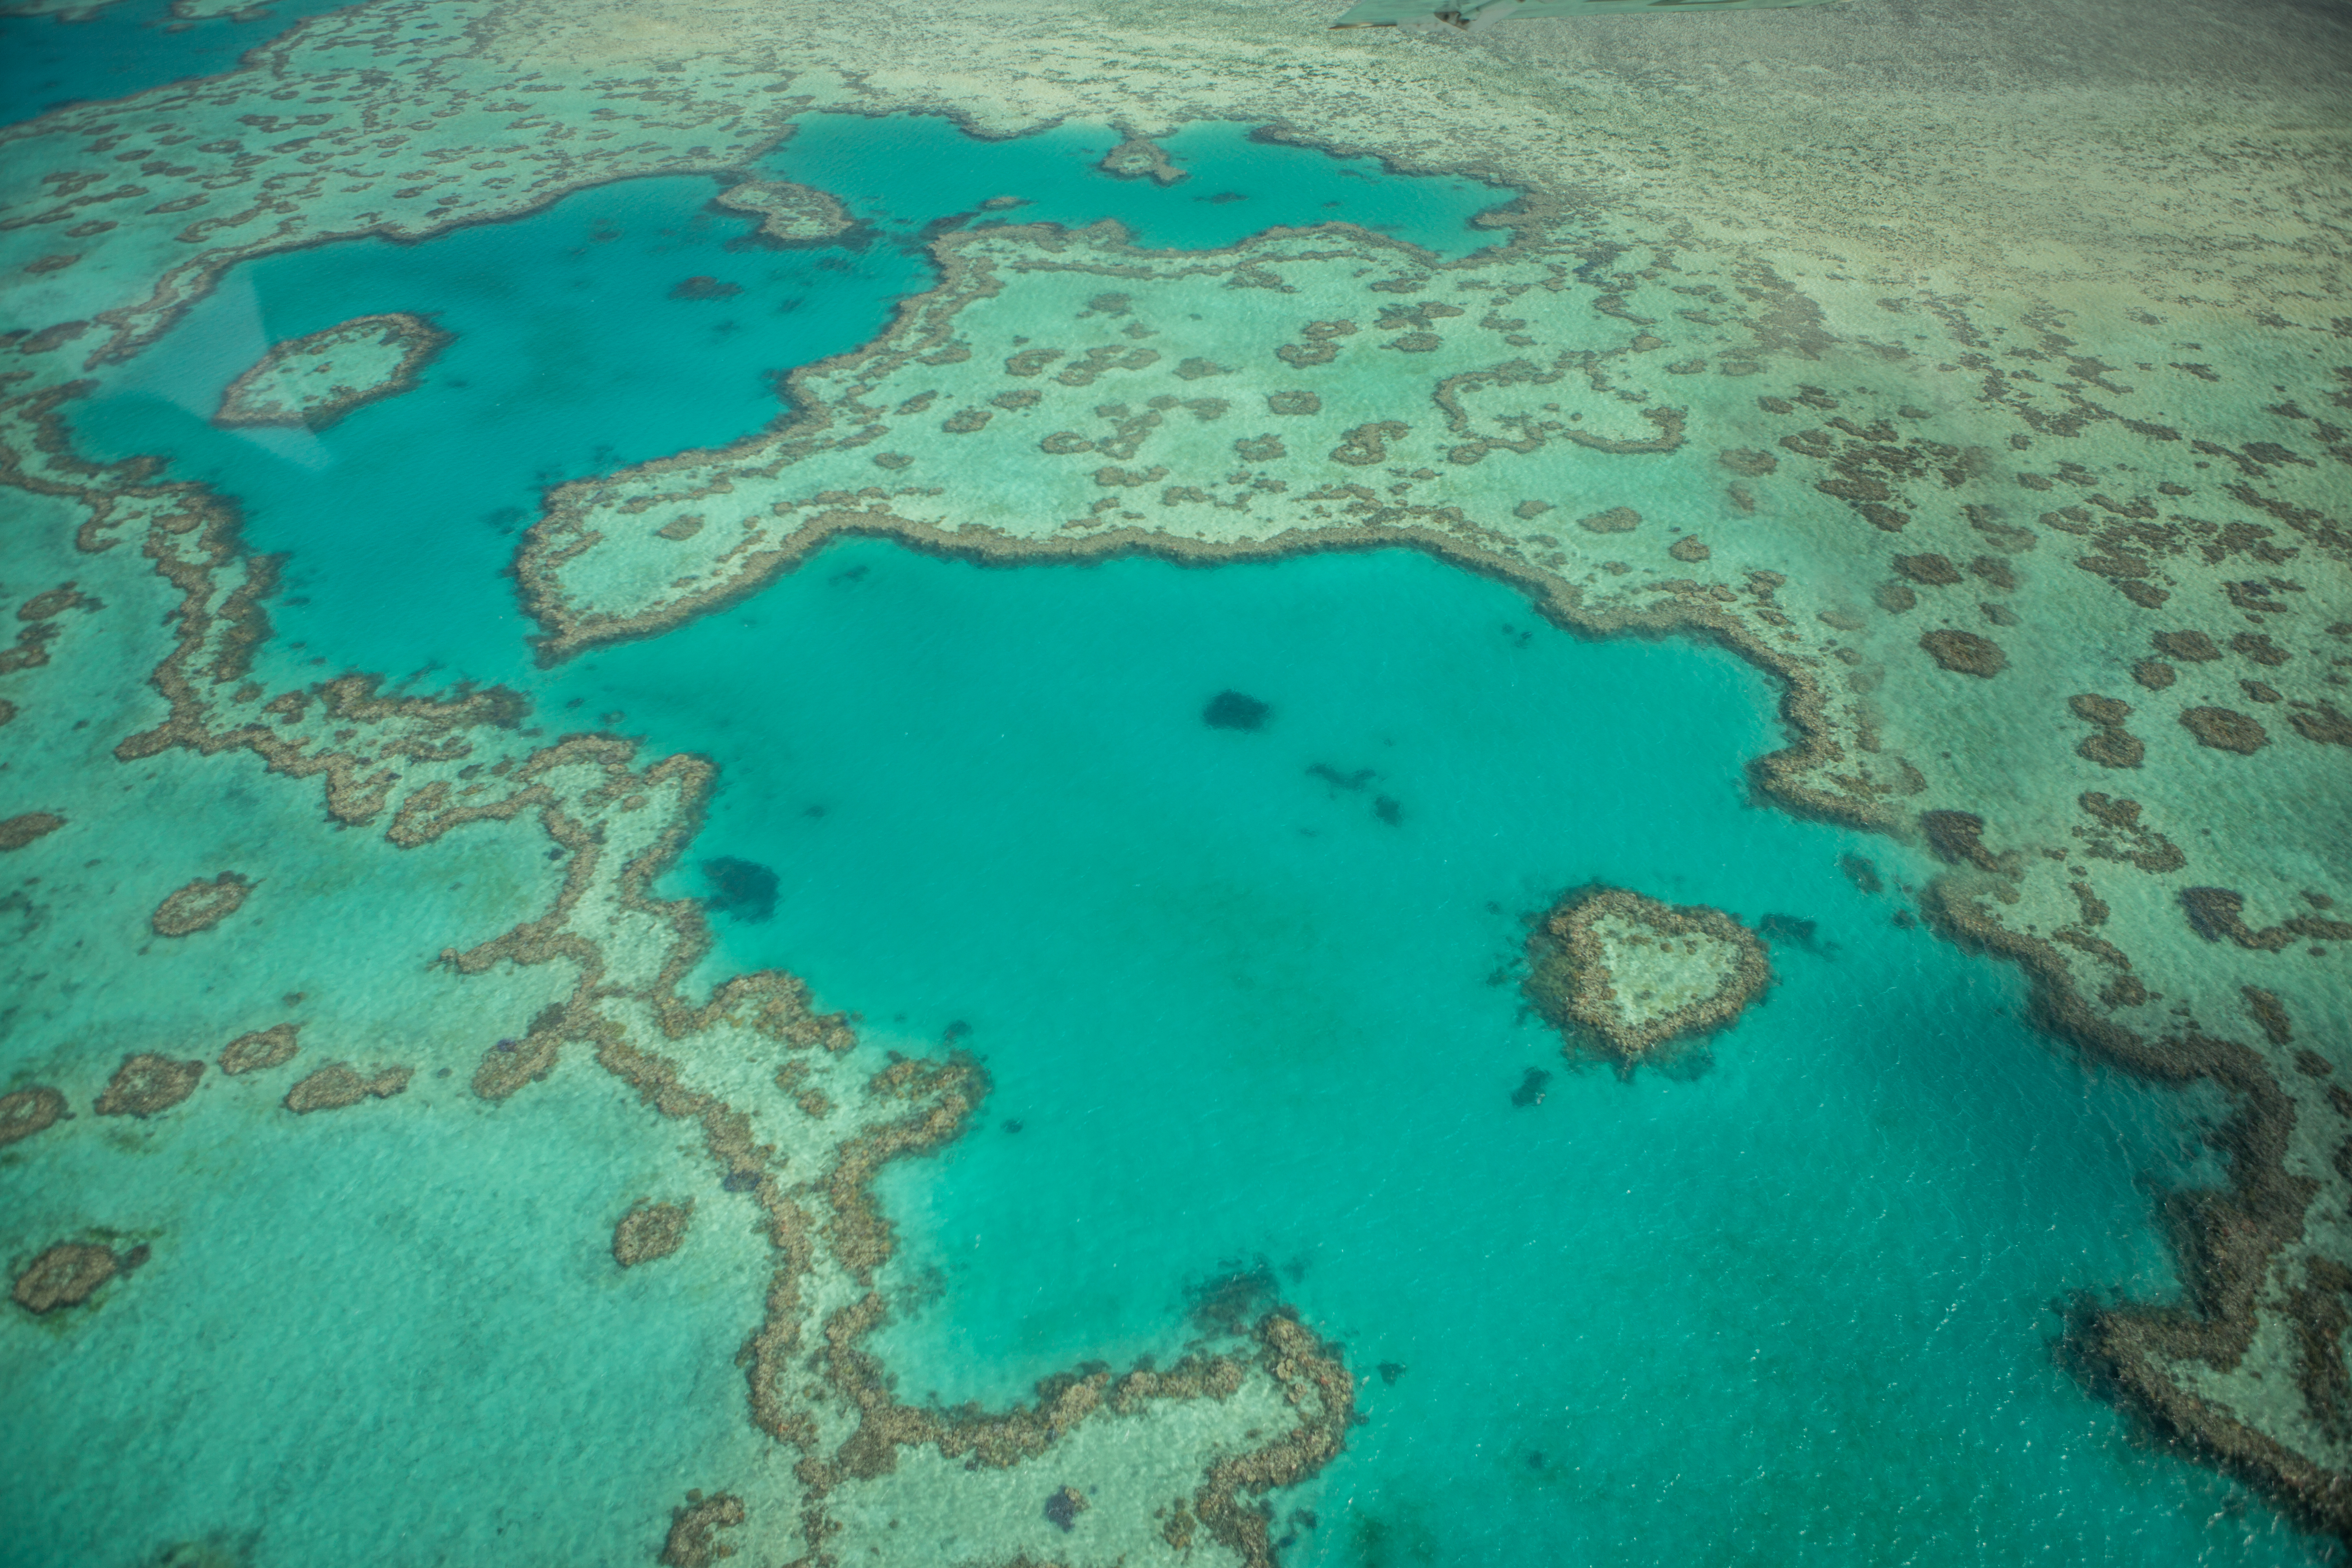 Aerial view of the Heart reef